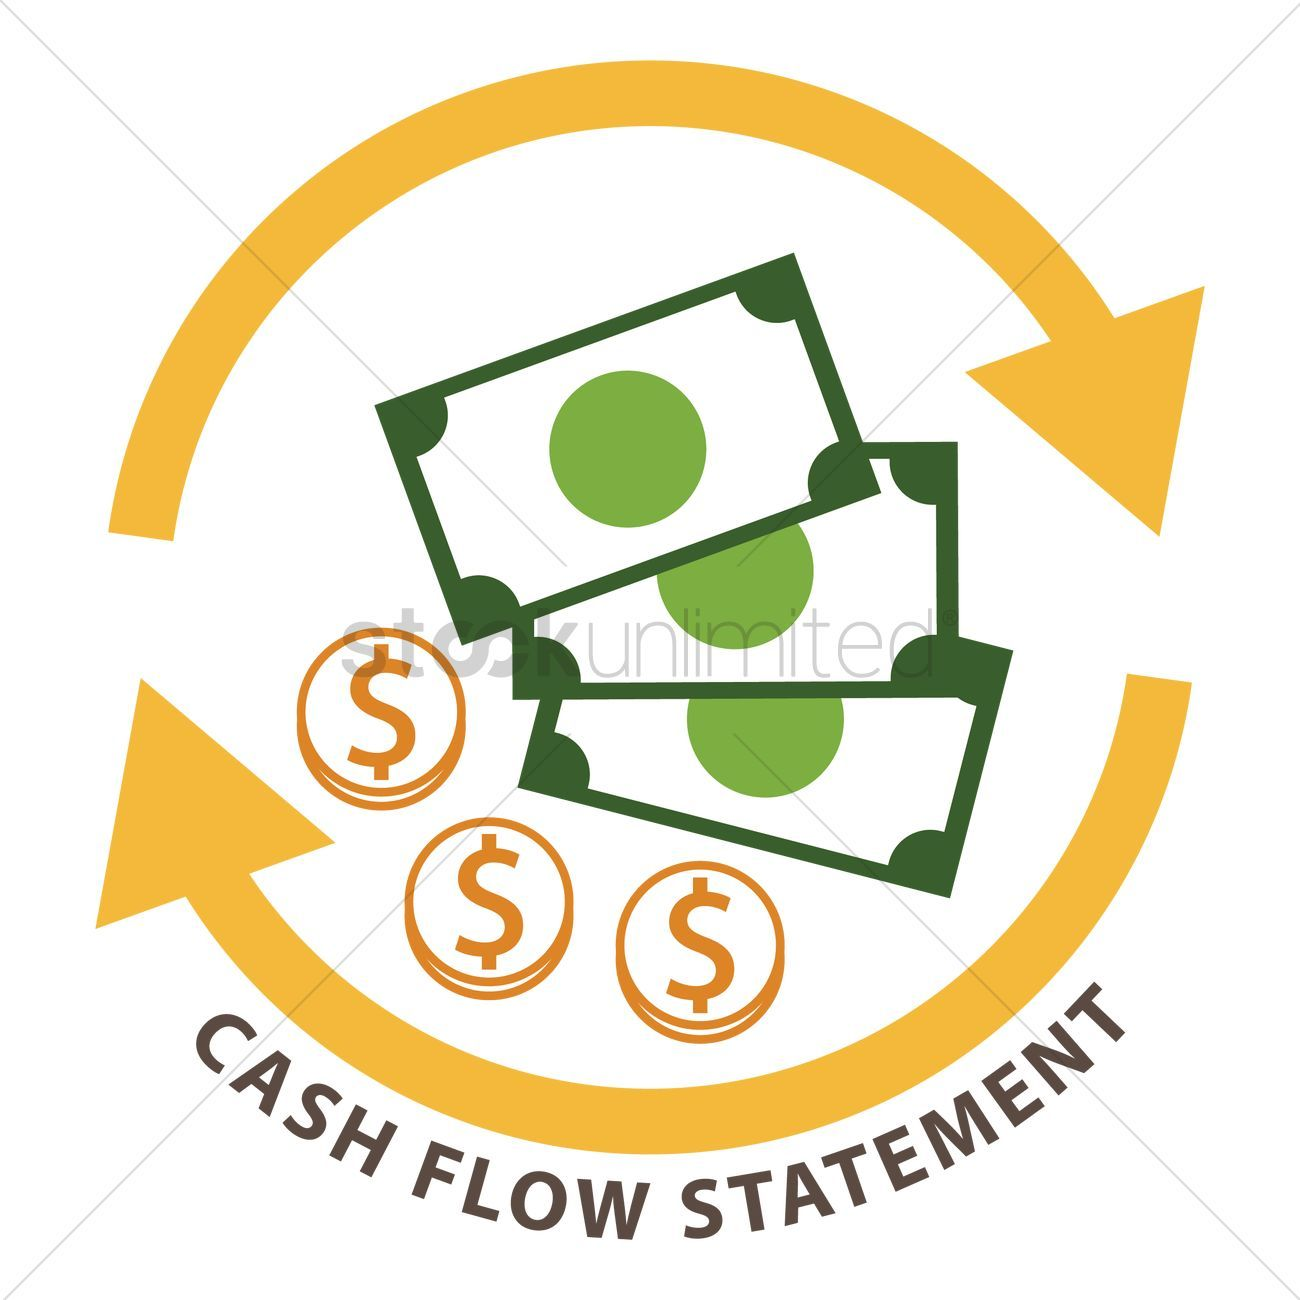 Cash flow statement clipart 7 » Clipart Portal graphic transparent library